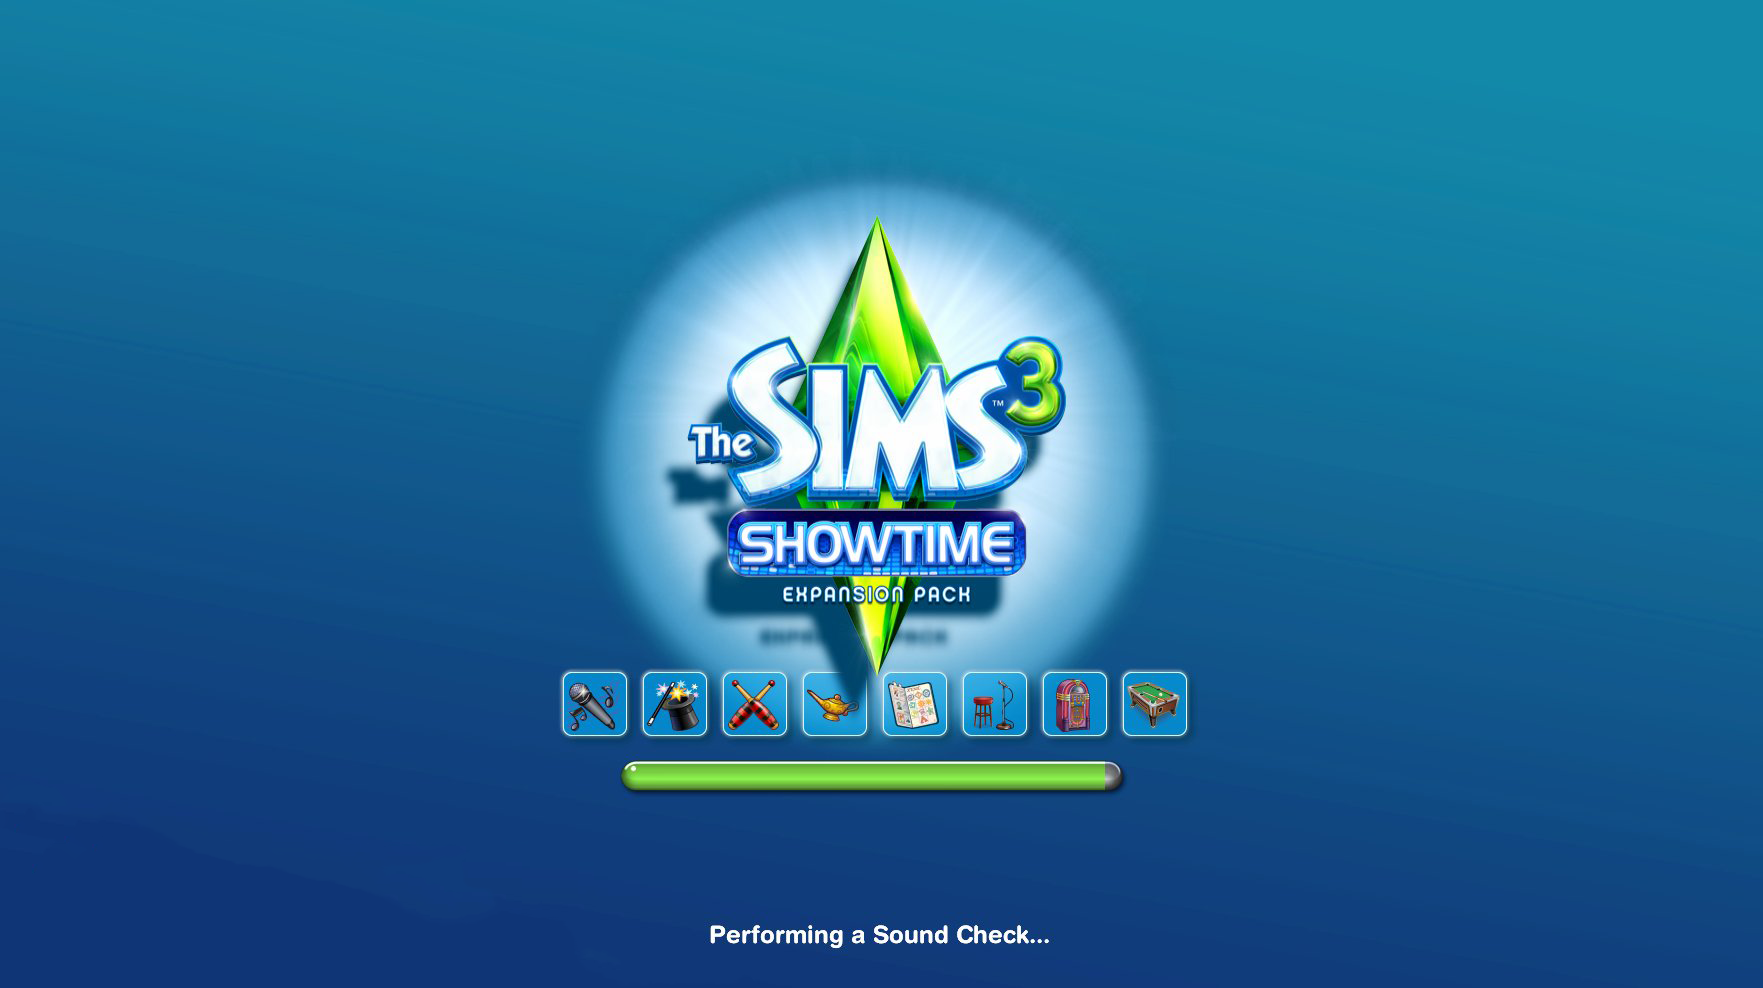 The Sims 3 Showtime Review | Mister Plumbob